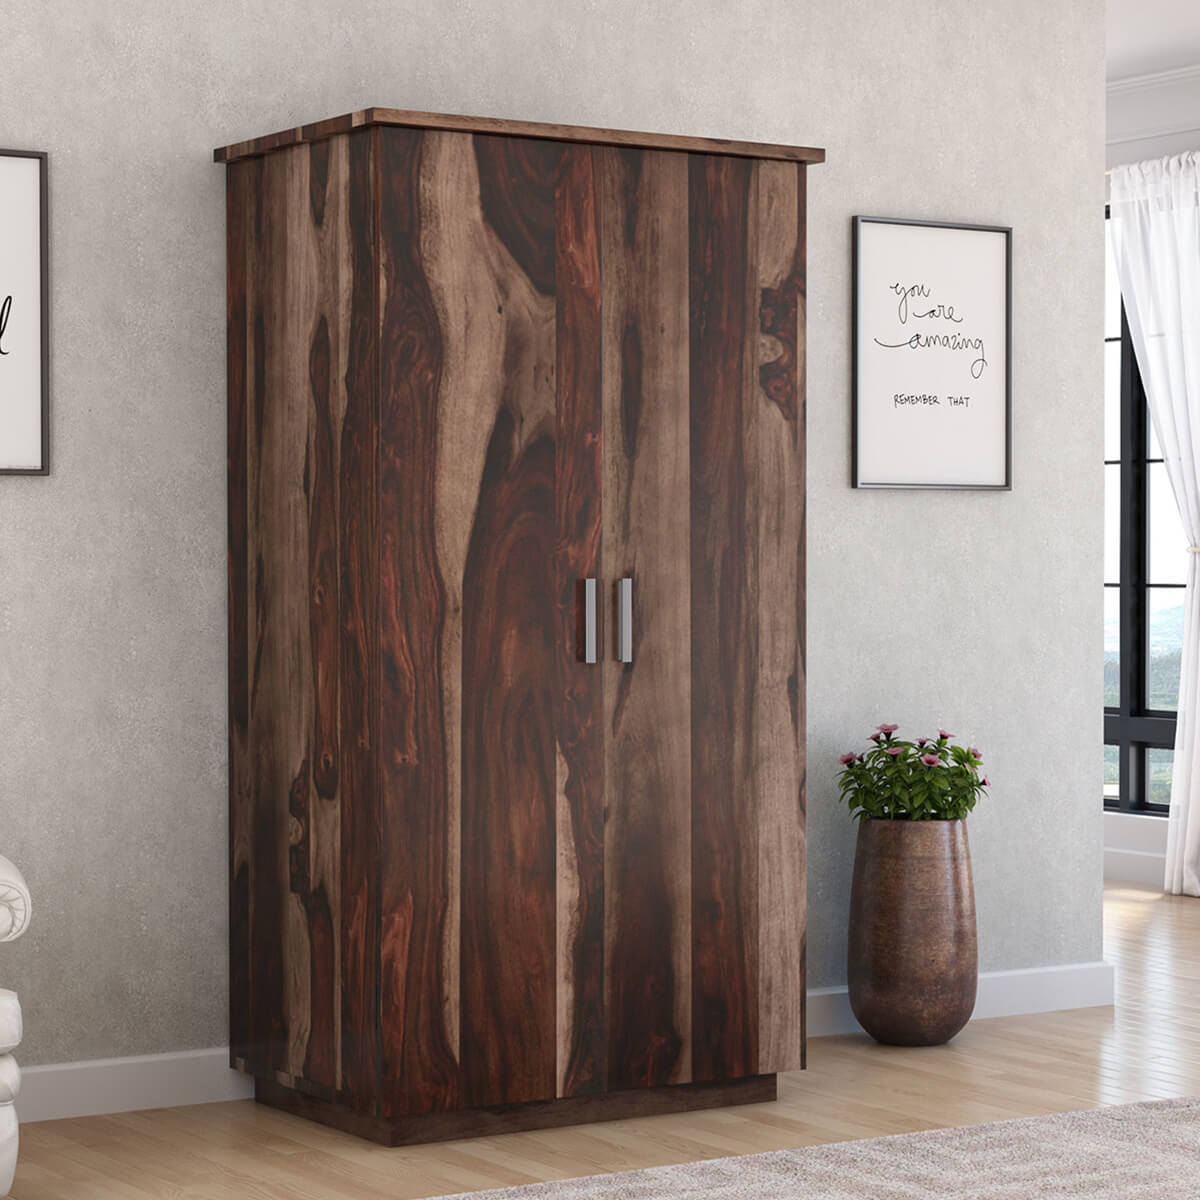 Wardrobe Furniture Indiana Rustic Solid Wood Wardrobe Armoire With Drawers And Shelves